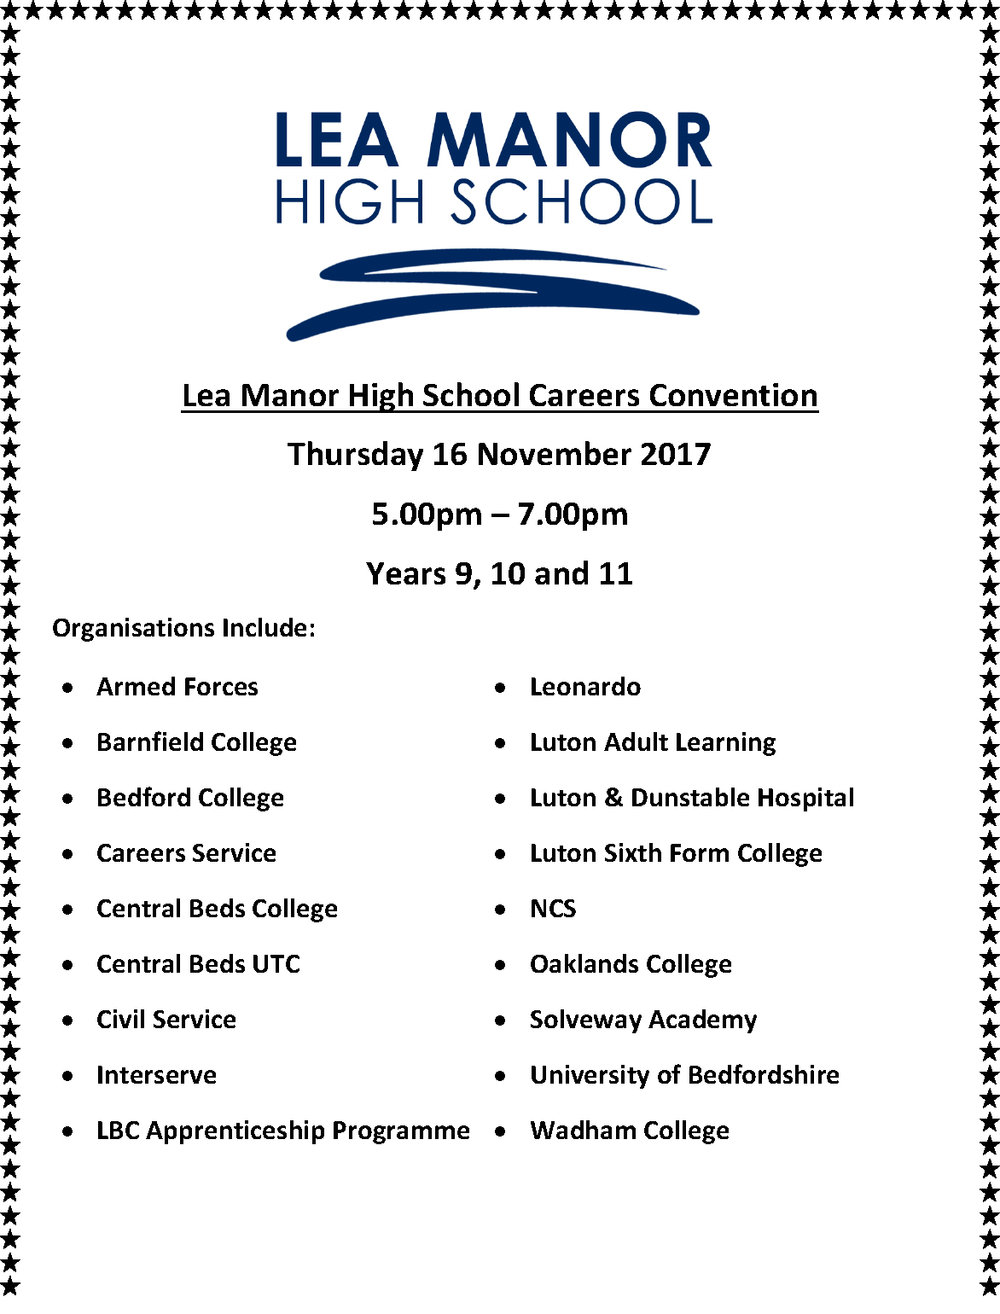 Careers Convention Flyer.jpg